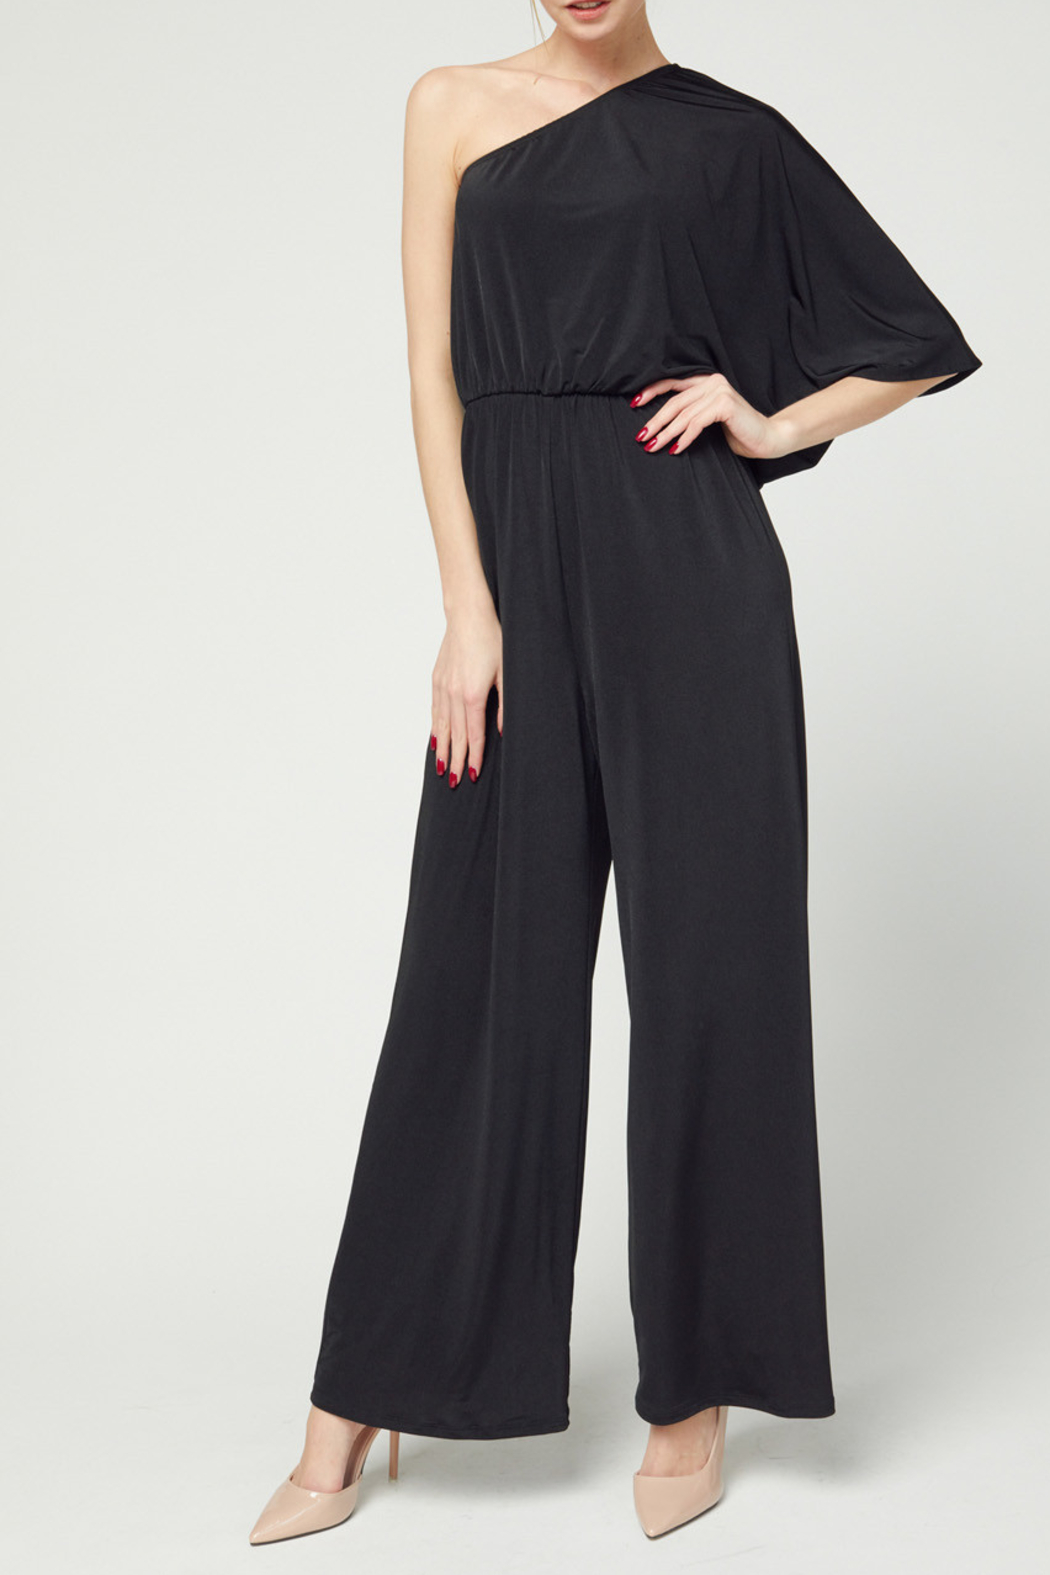 entro  Downtown Diva Jumpsuit - Front Cropped Image